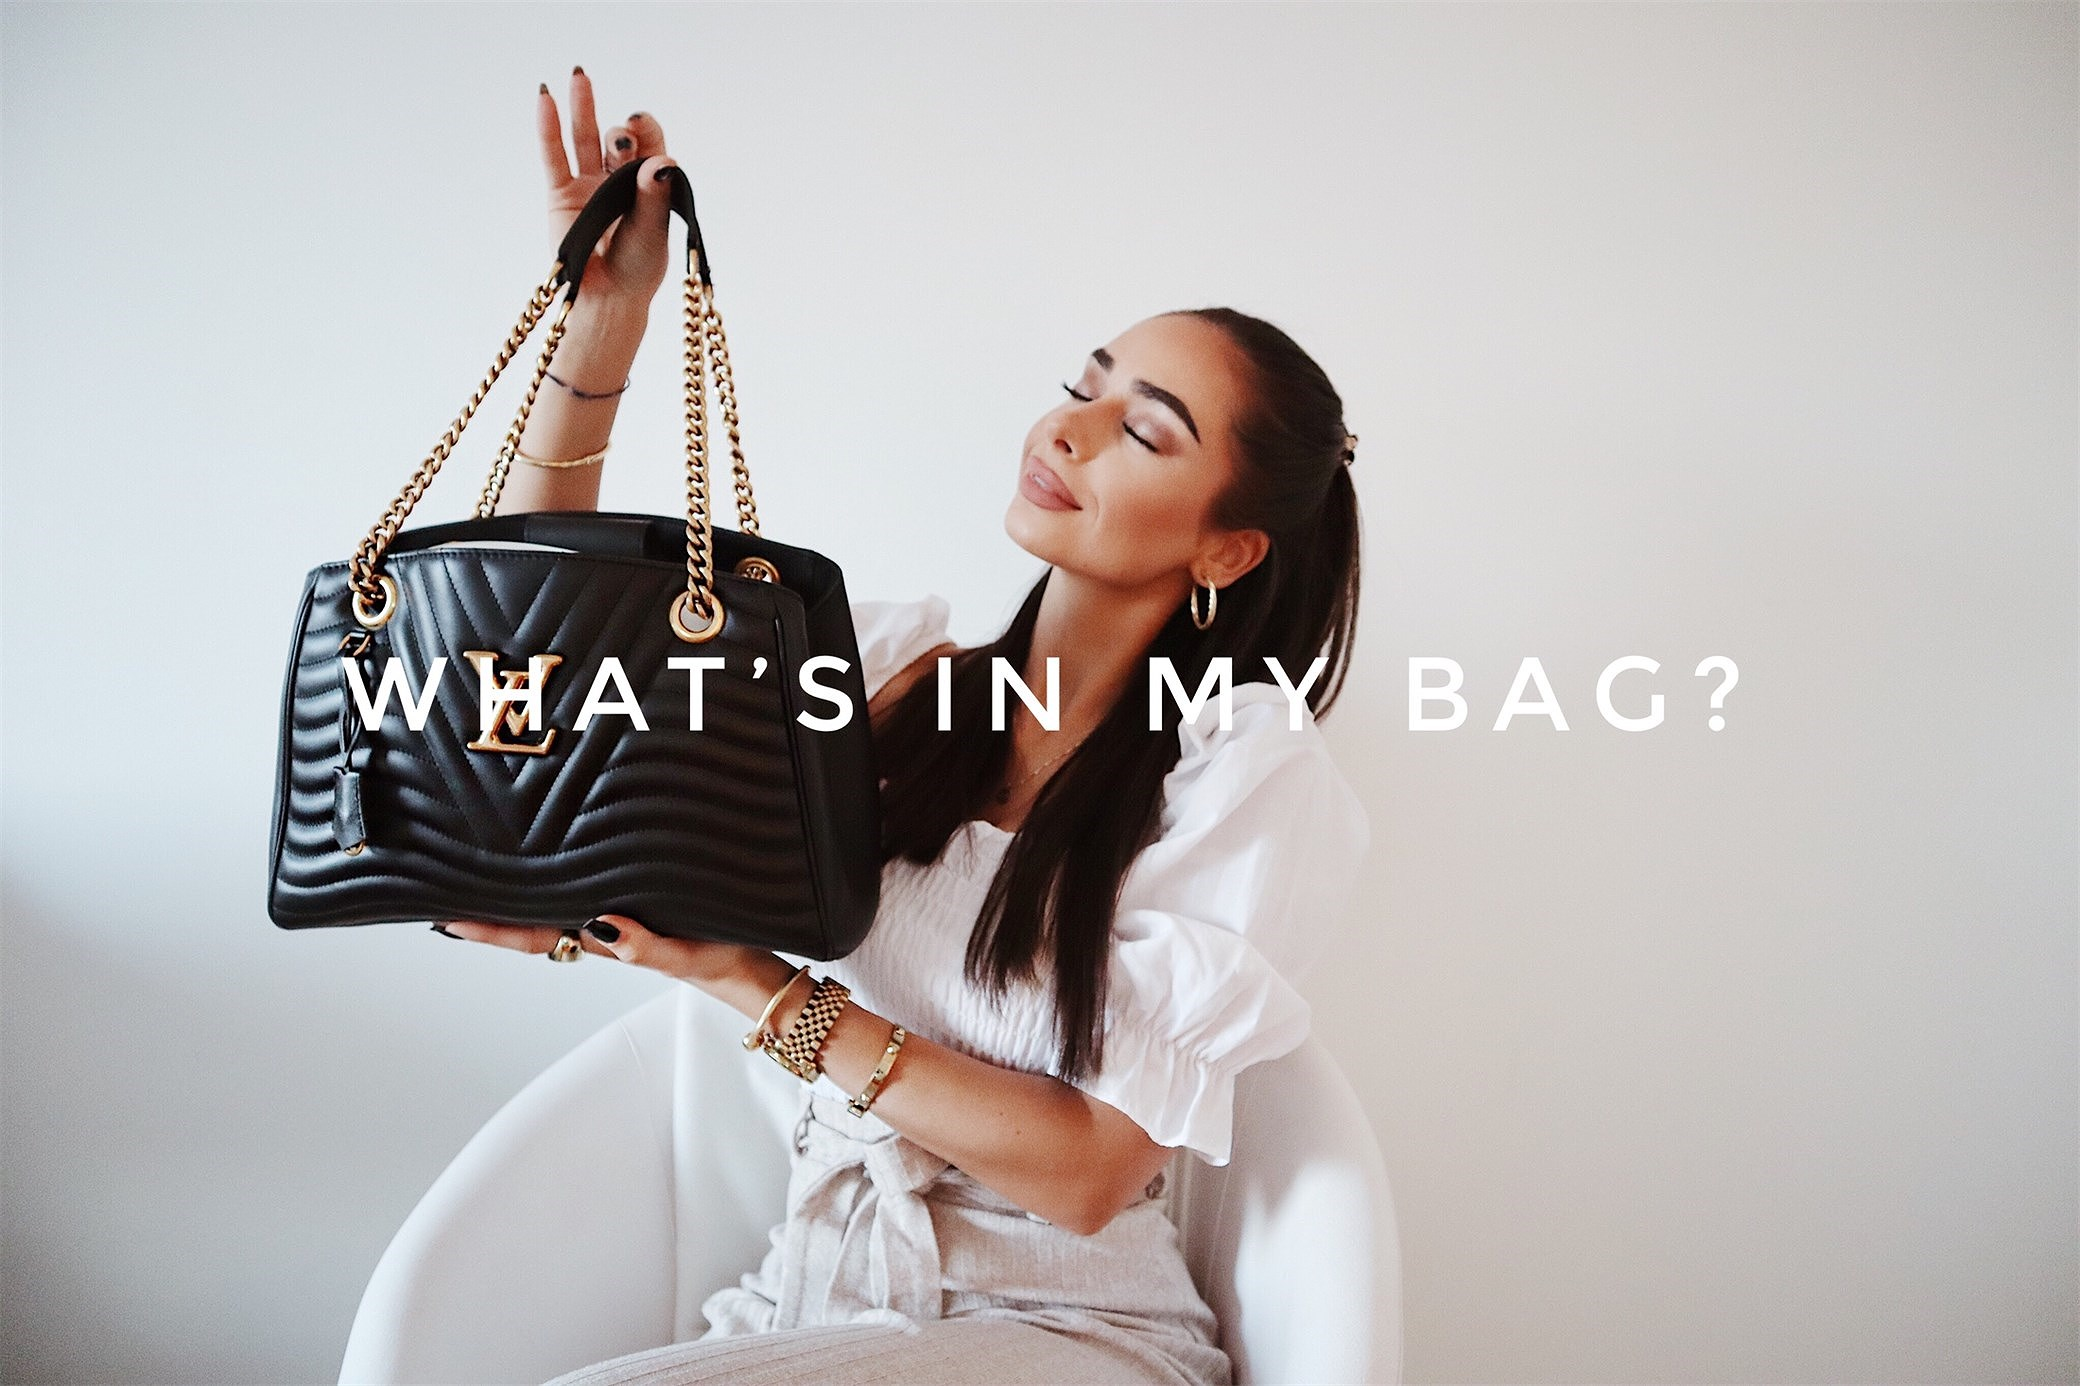 VIDEO: WHAT'S IN MY BAG